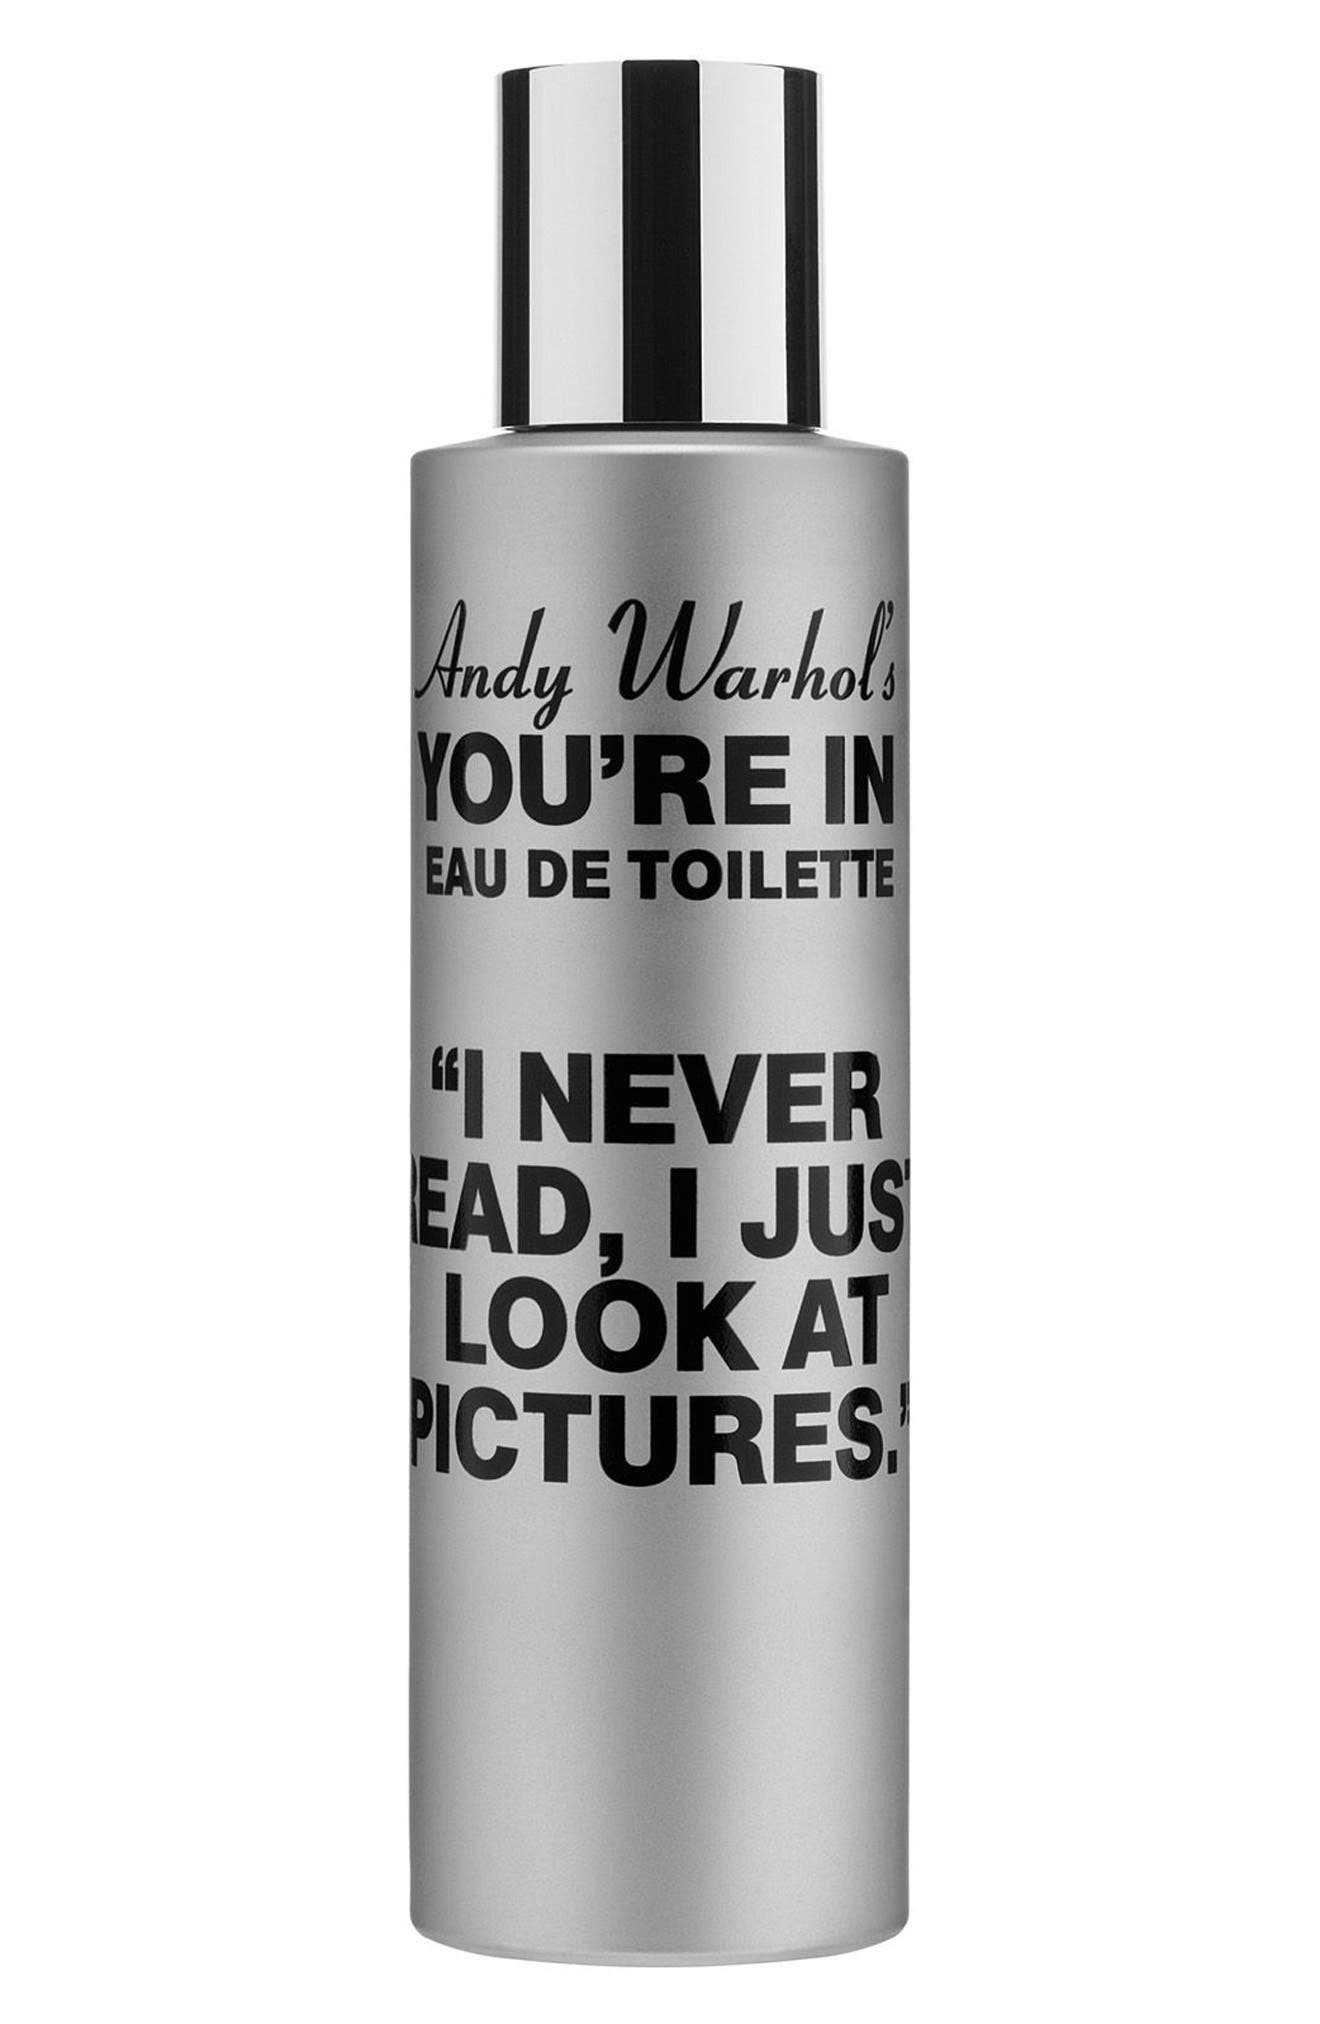 Alternate Image 1 Selected - Comme des Garçons Andy Warhol You're In Unisex Eau de Toilette